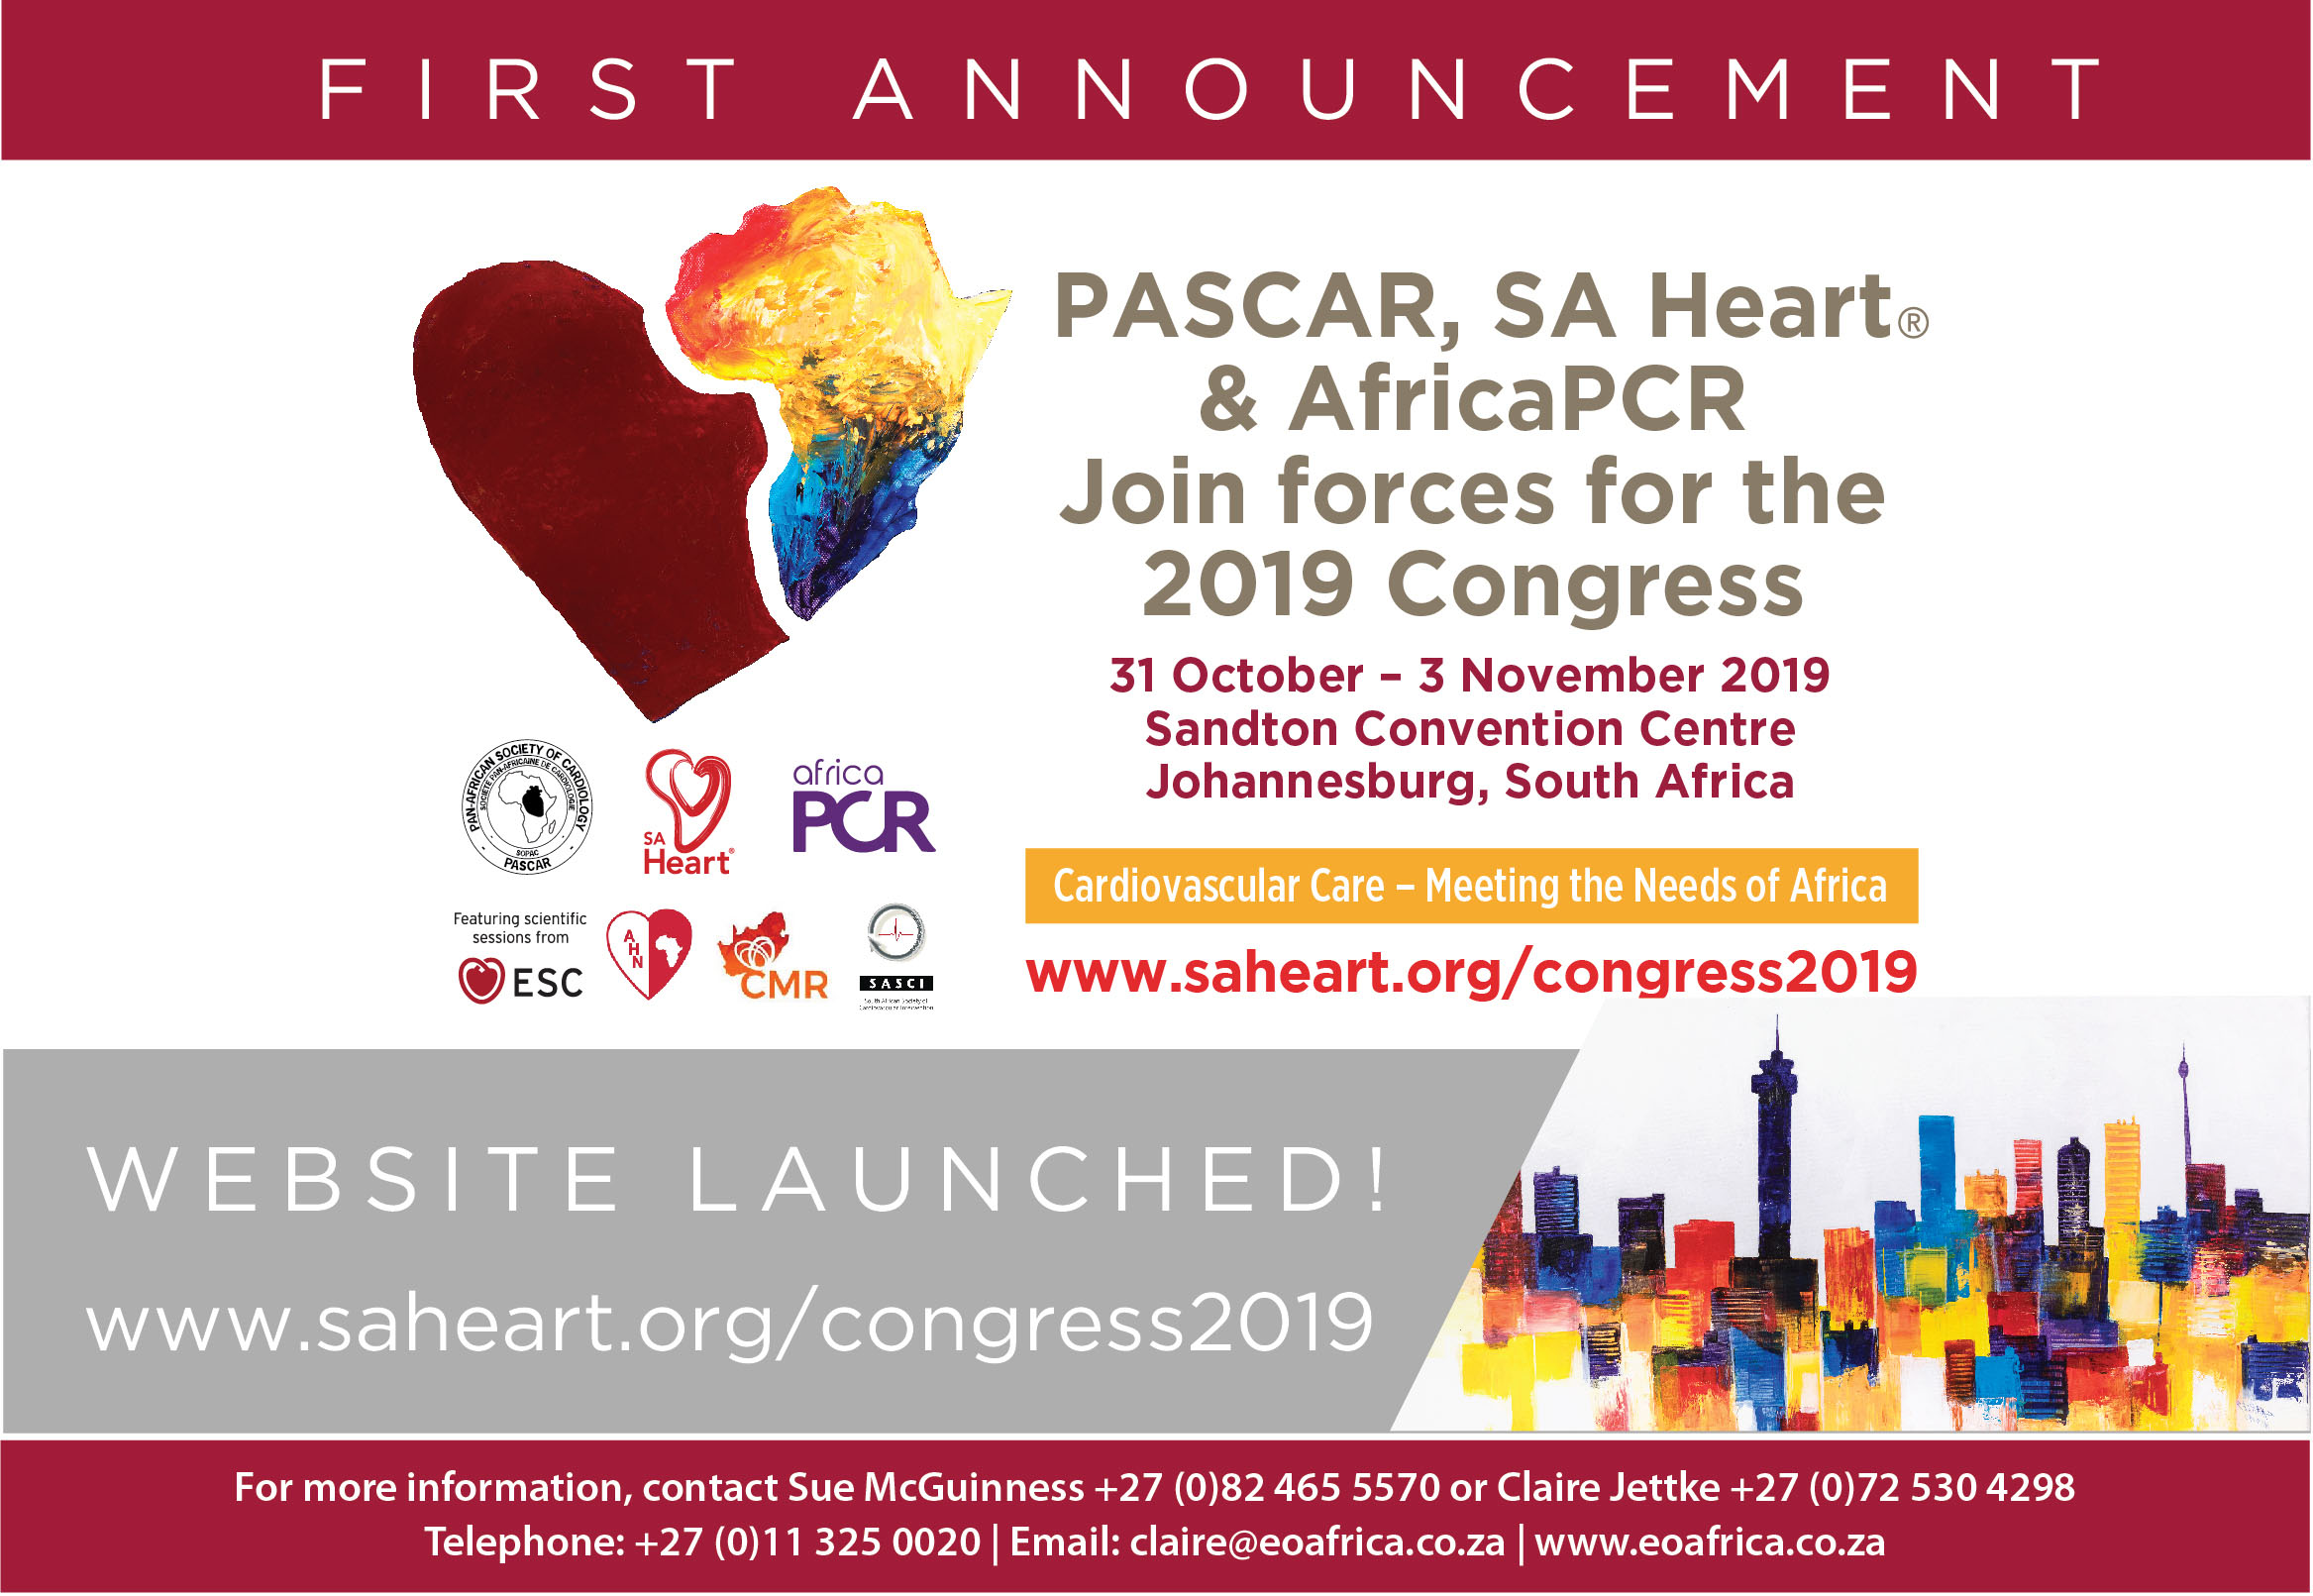 PASCAR SA Heart 2019 1st Announcement Revised Announcement Dec 2018 02 xx